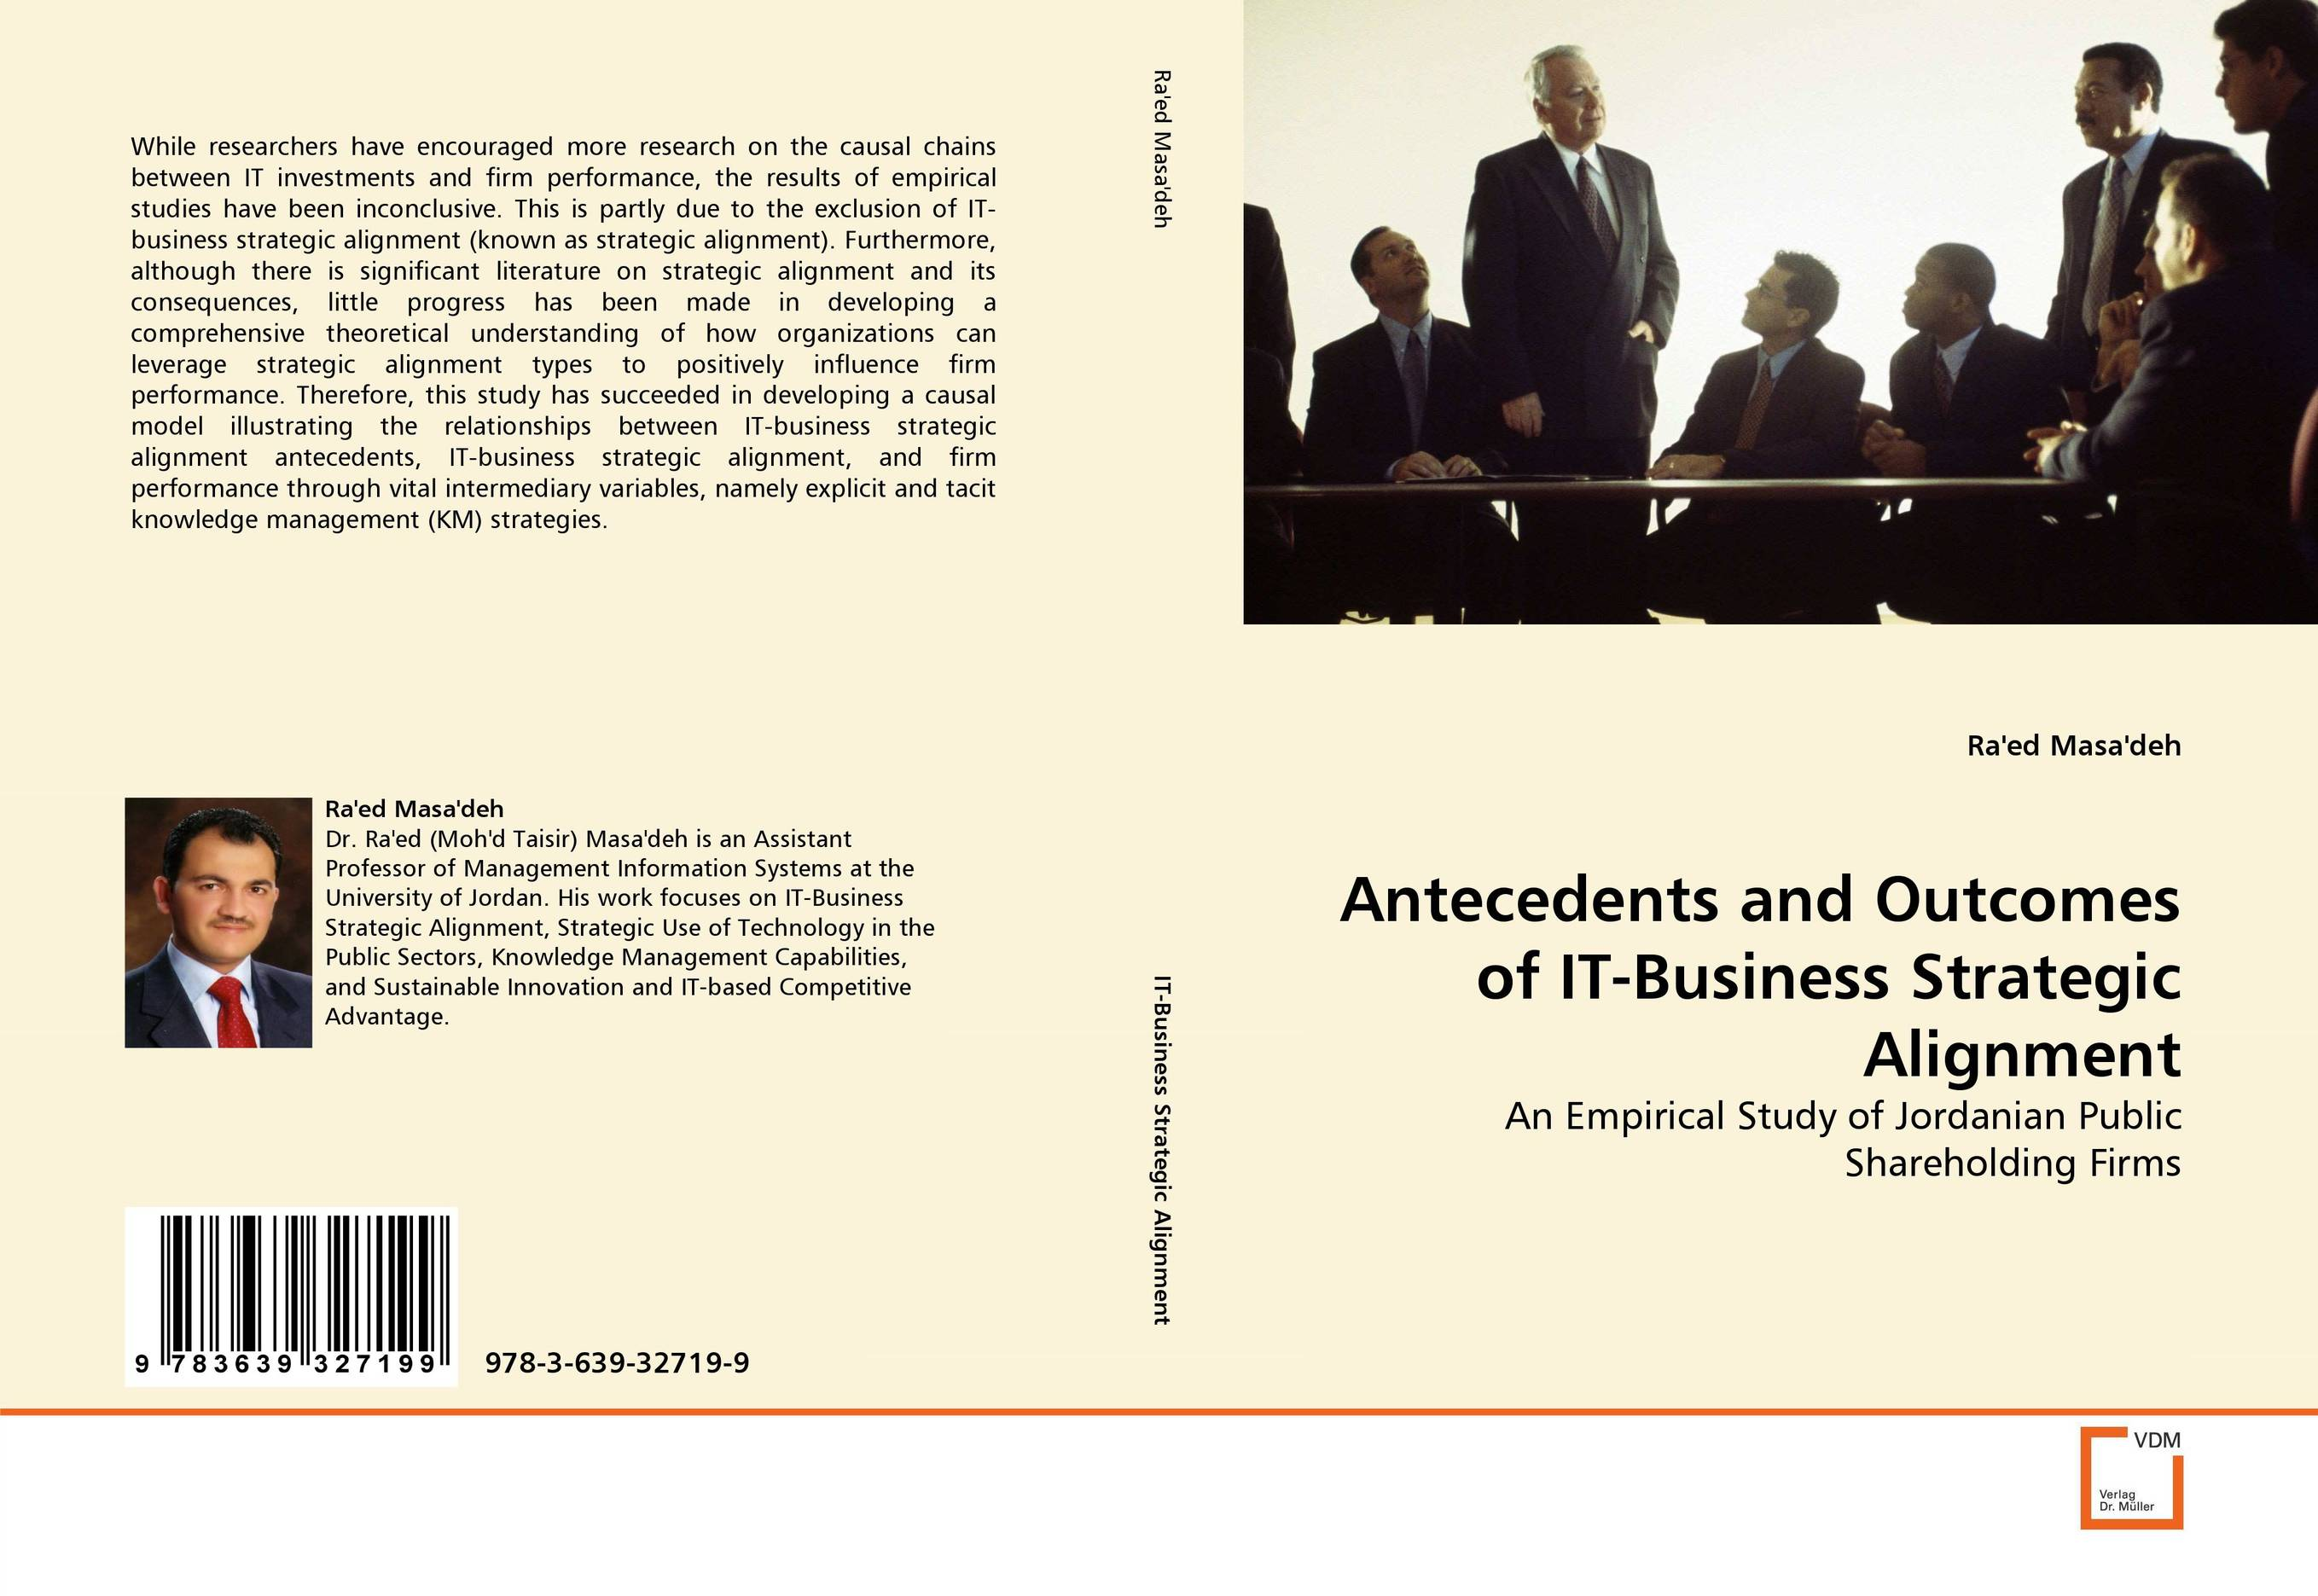 Фото Antecedents and Outcomes of IT-Business Strategic Alignment finance and investments